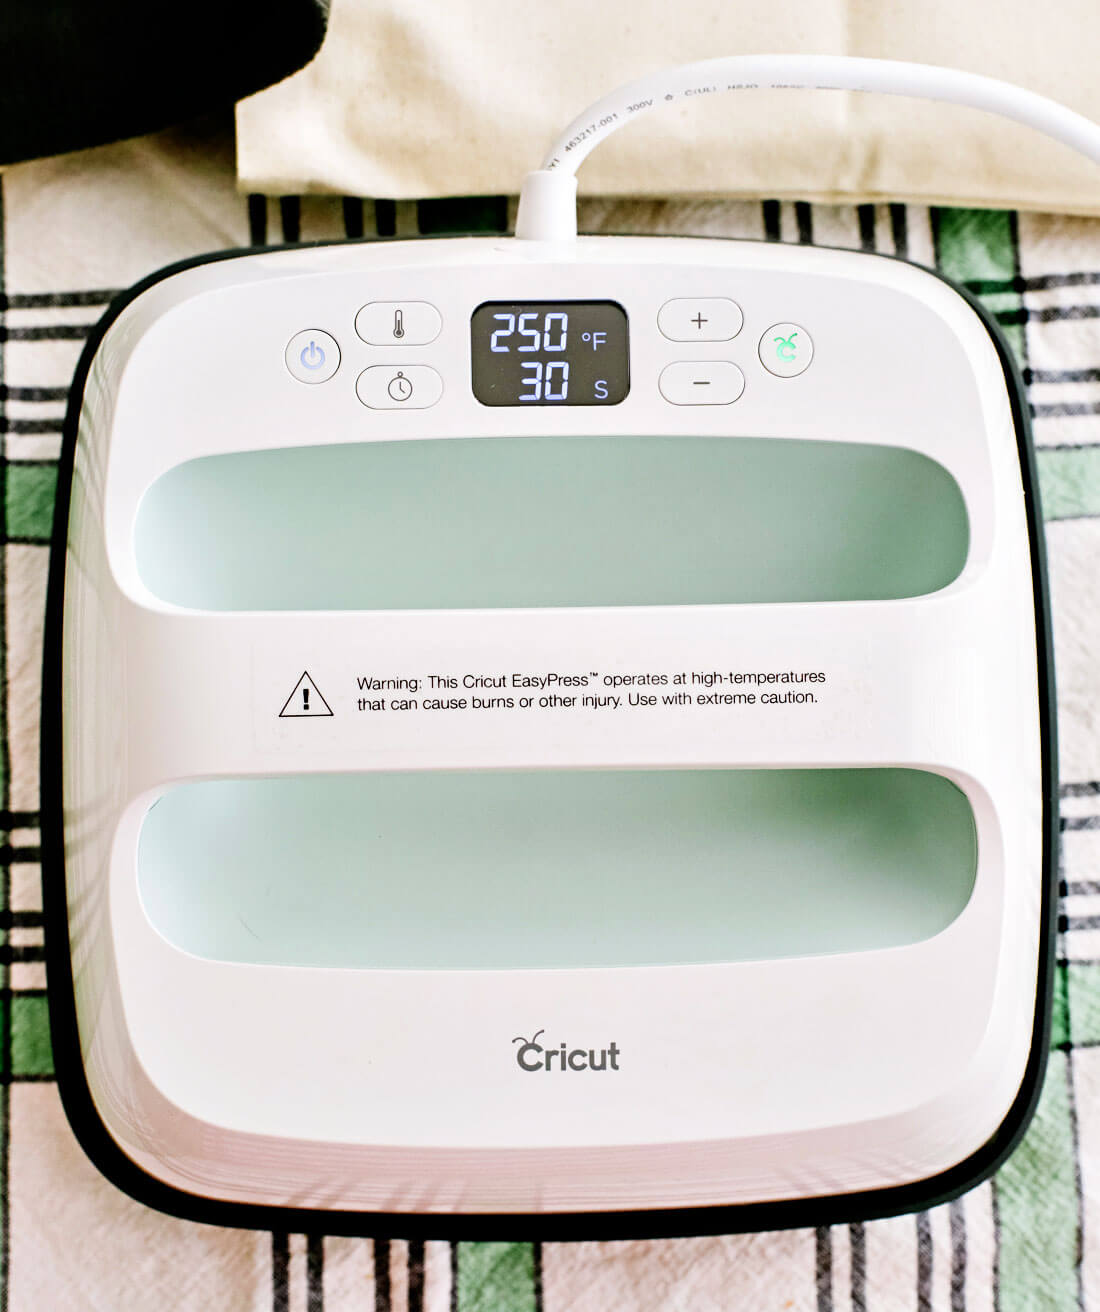 How to use the Cricut Easy Press 2